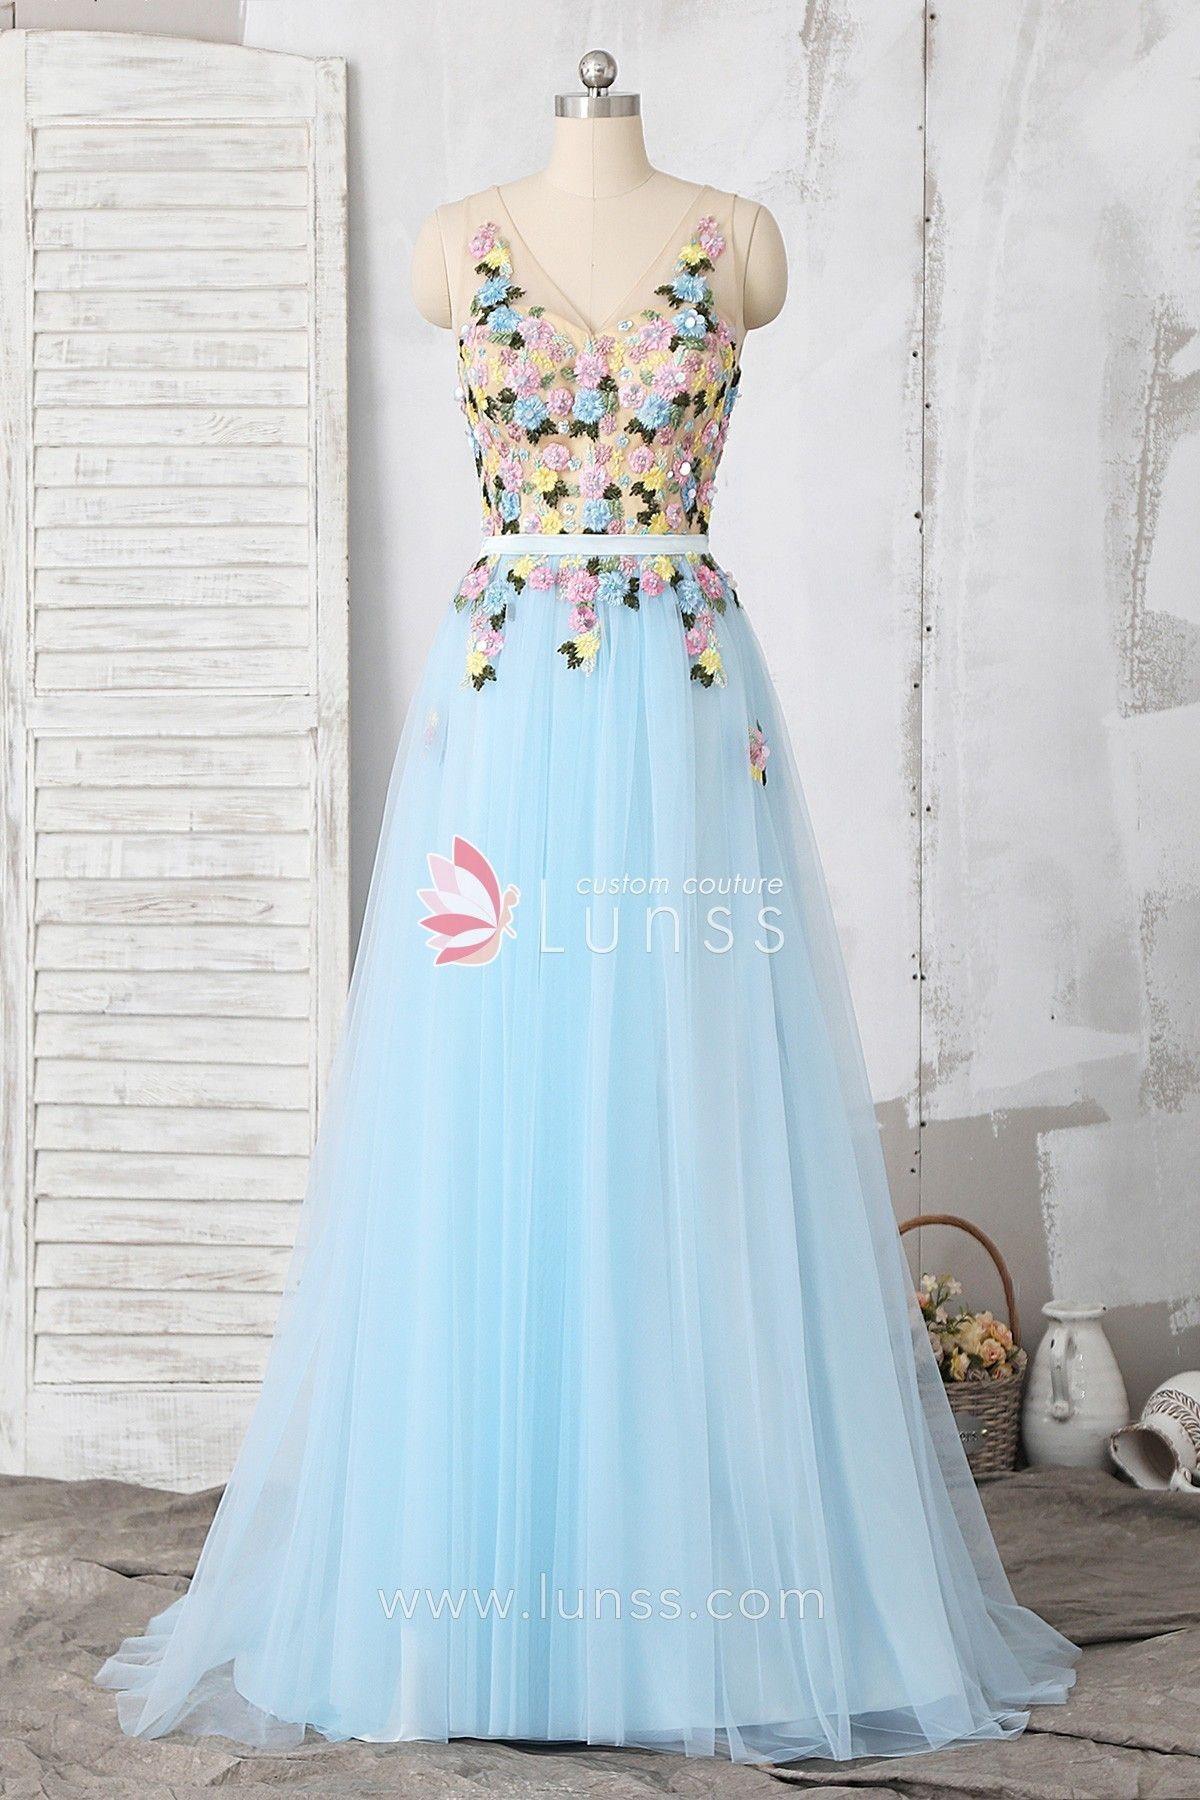 a28d7cba79 Baby Blue Beaded Embroidery Lace Tulle A-line Long Prom Dress in ...